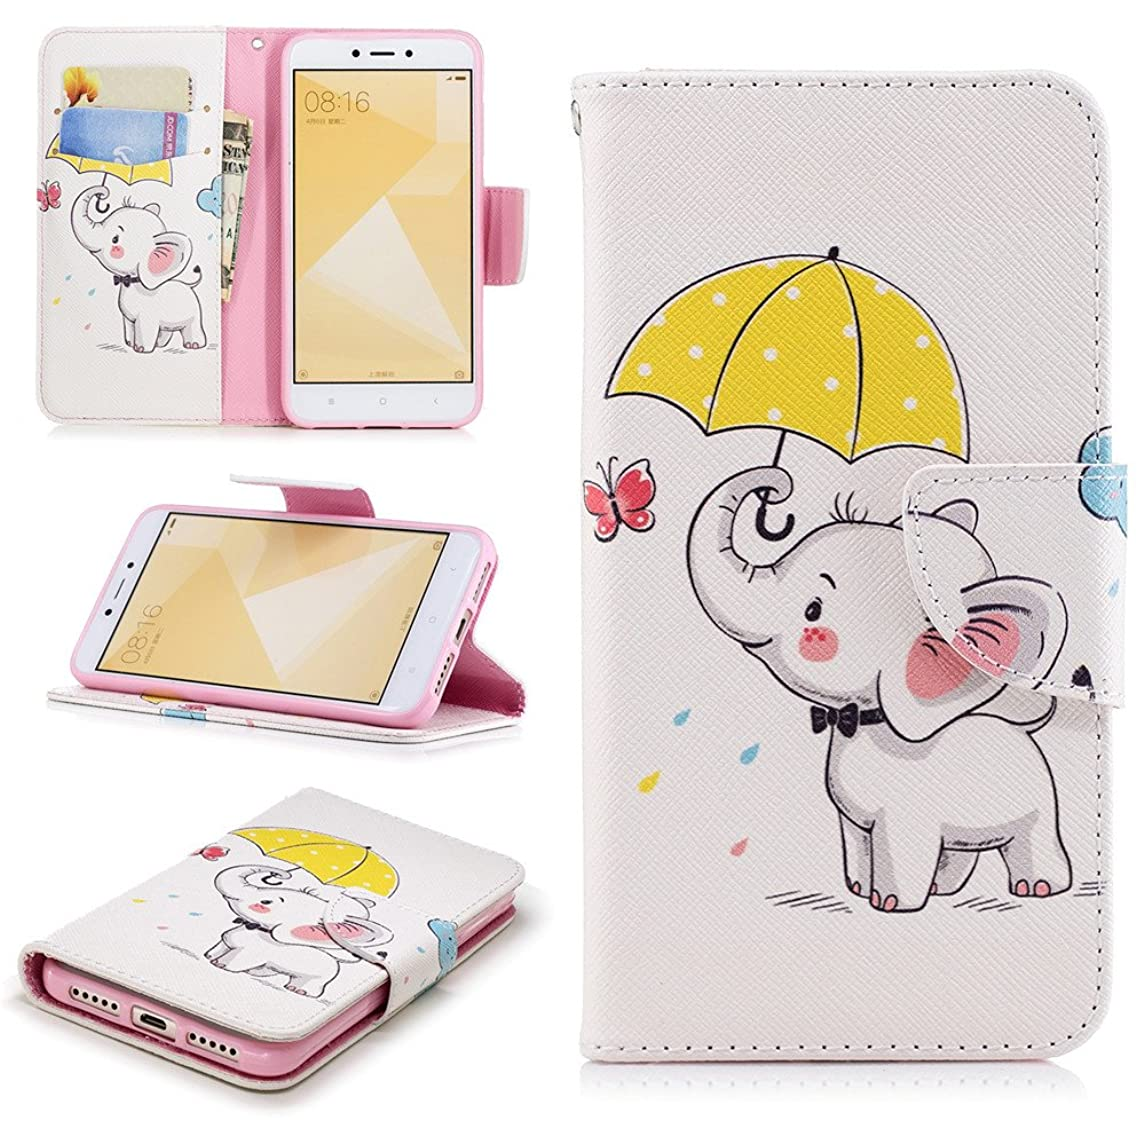 Ooboom Huawei Y7 2019 Case Magnetic Flip Folio PU Faux Leather Wallet Cover Purse Stand with Credit Card Slots Cash Holder Packet for Huawei Y7 2019 - Umbrella Elephant